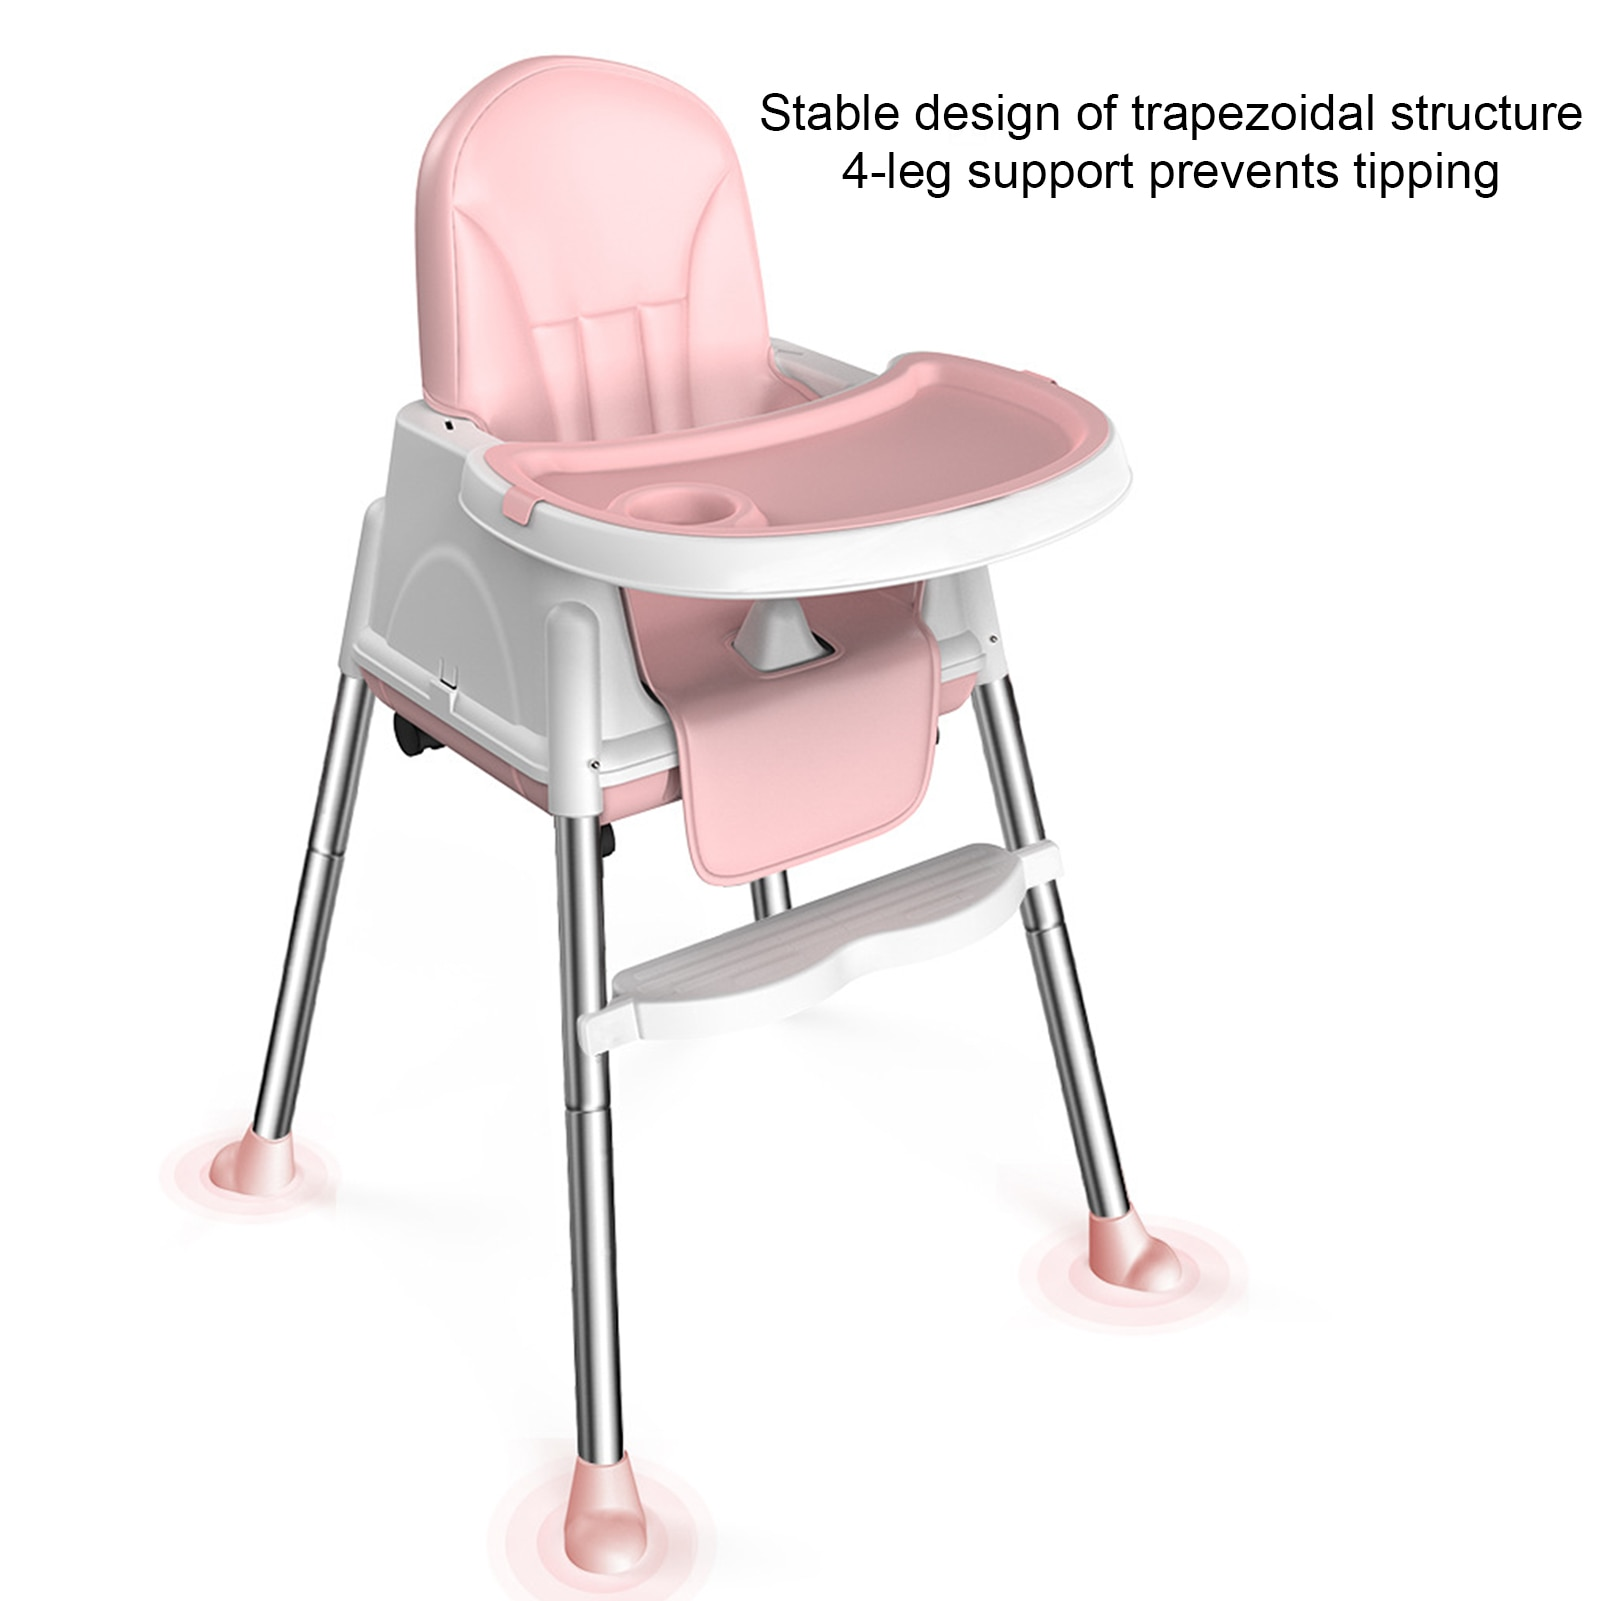 Portable Baby Seat Baby Dinner Table Baby Dining Chair Height Adjustable High Chair With Feeding Tray For Children enlarge